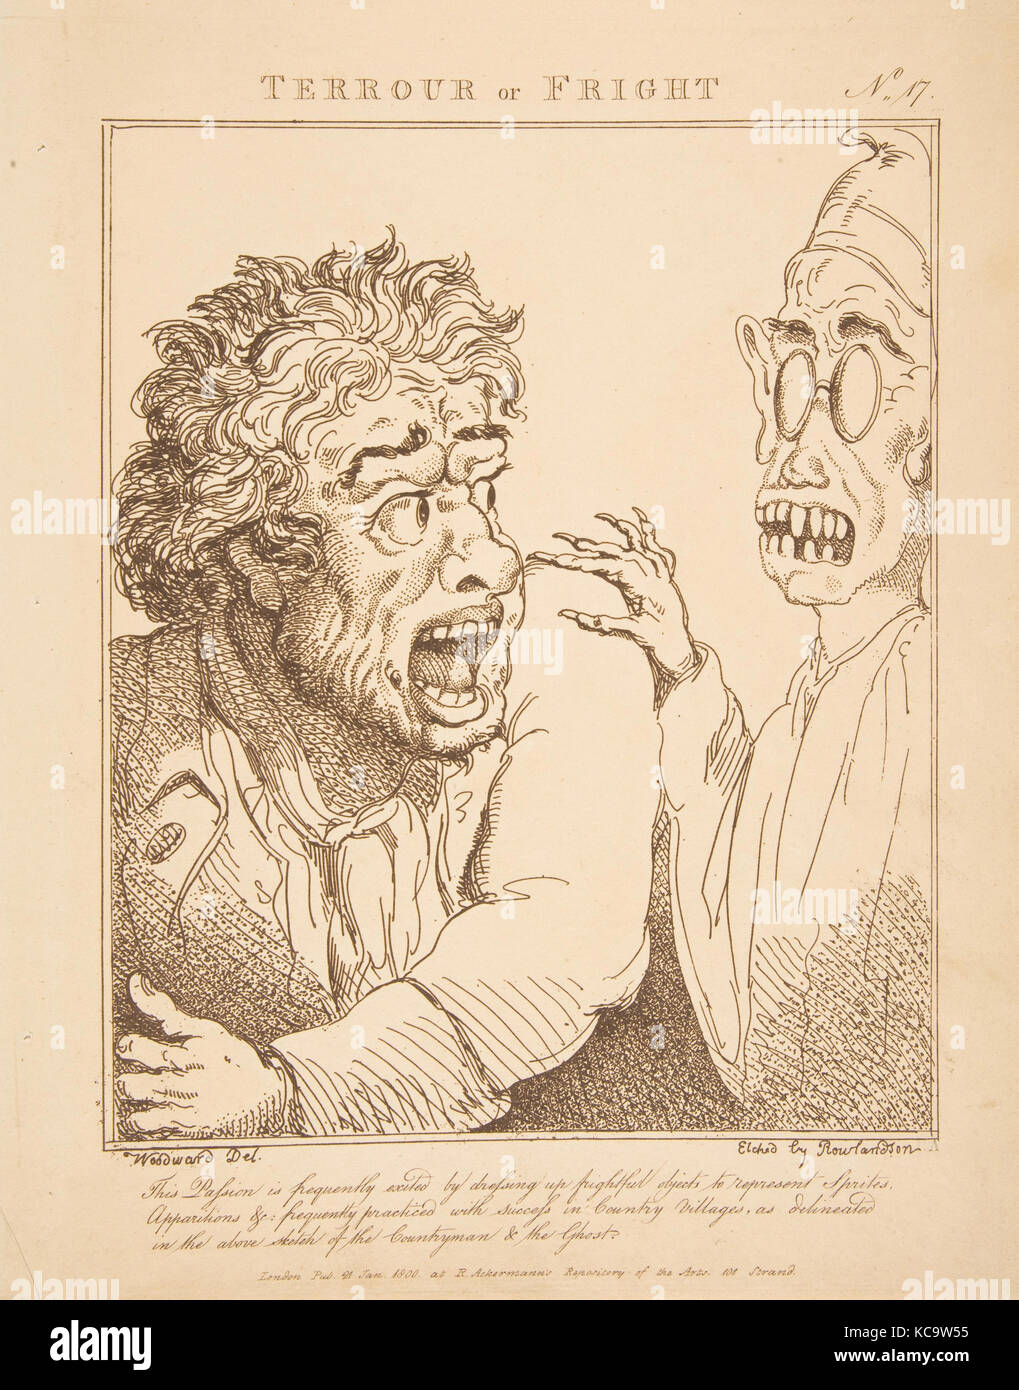 Terrour or Fright (Le Brun Travested, or Caricatures of the Passions), After George Moutard Woodward, January 21, - Stock Image